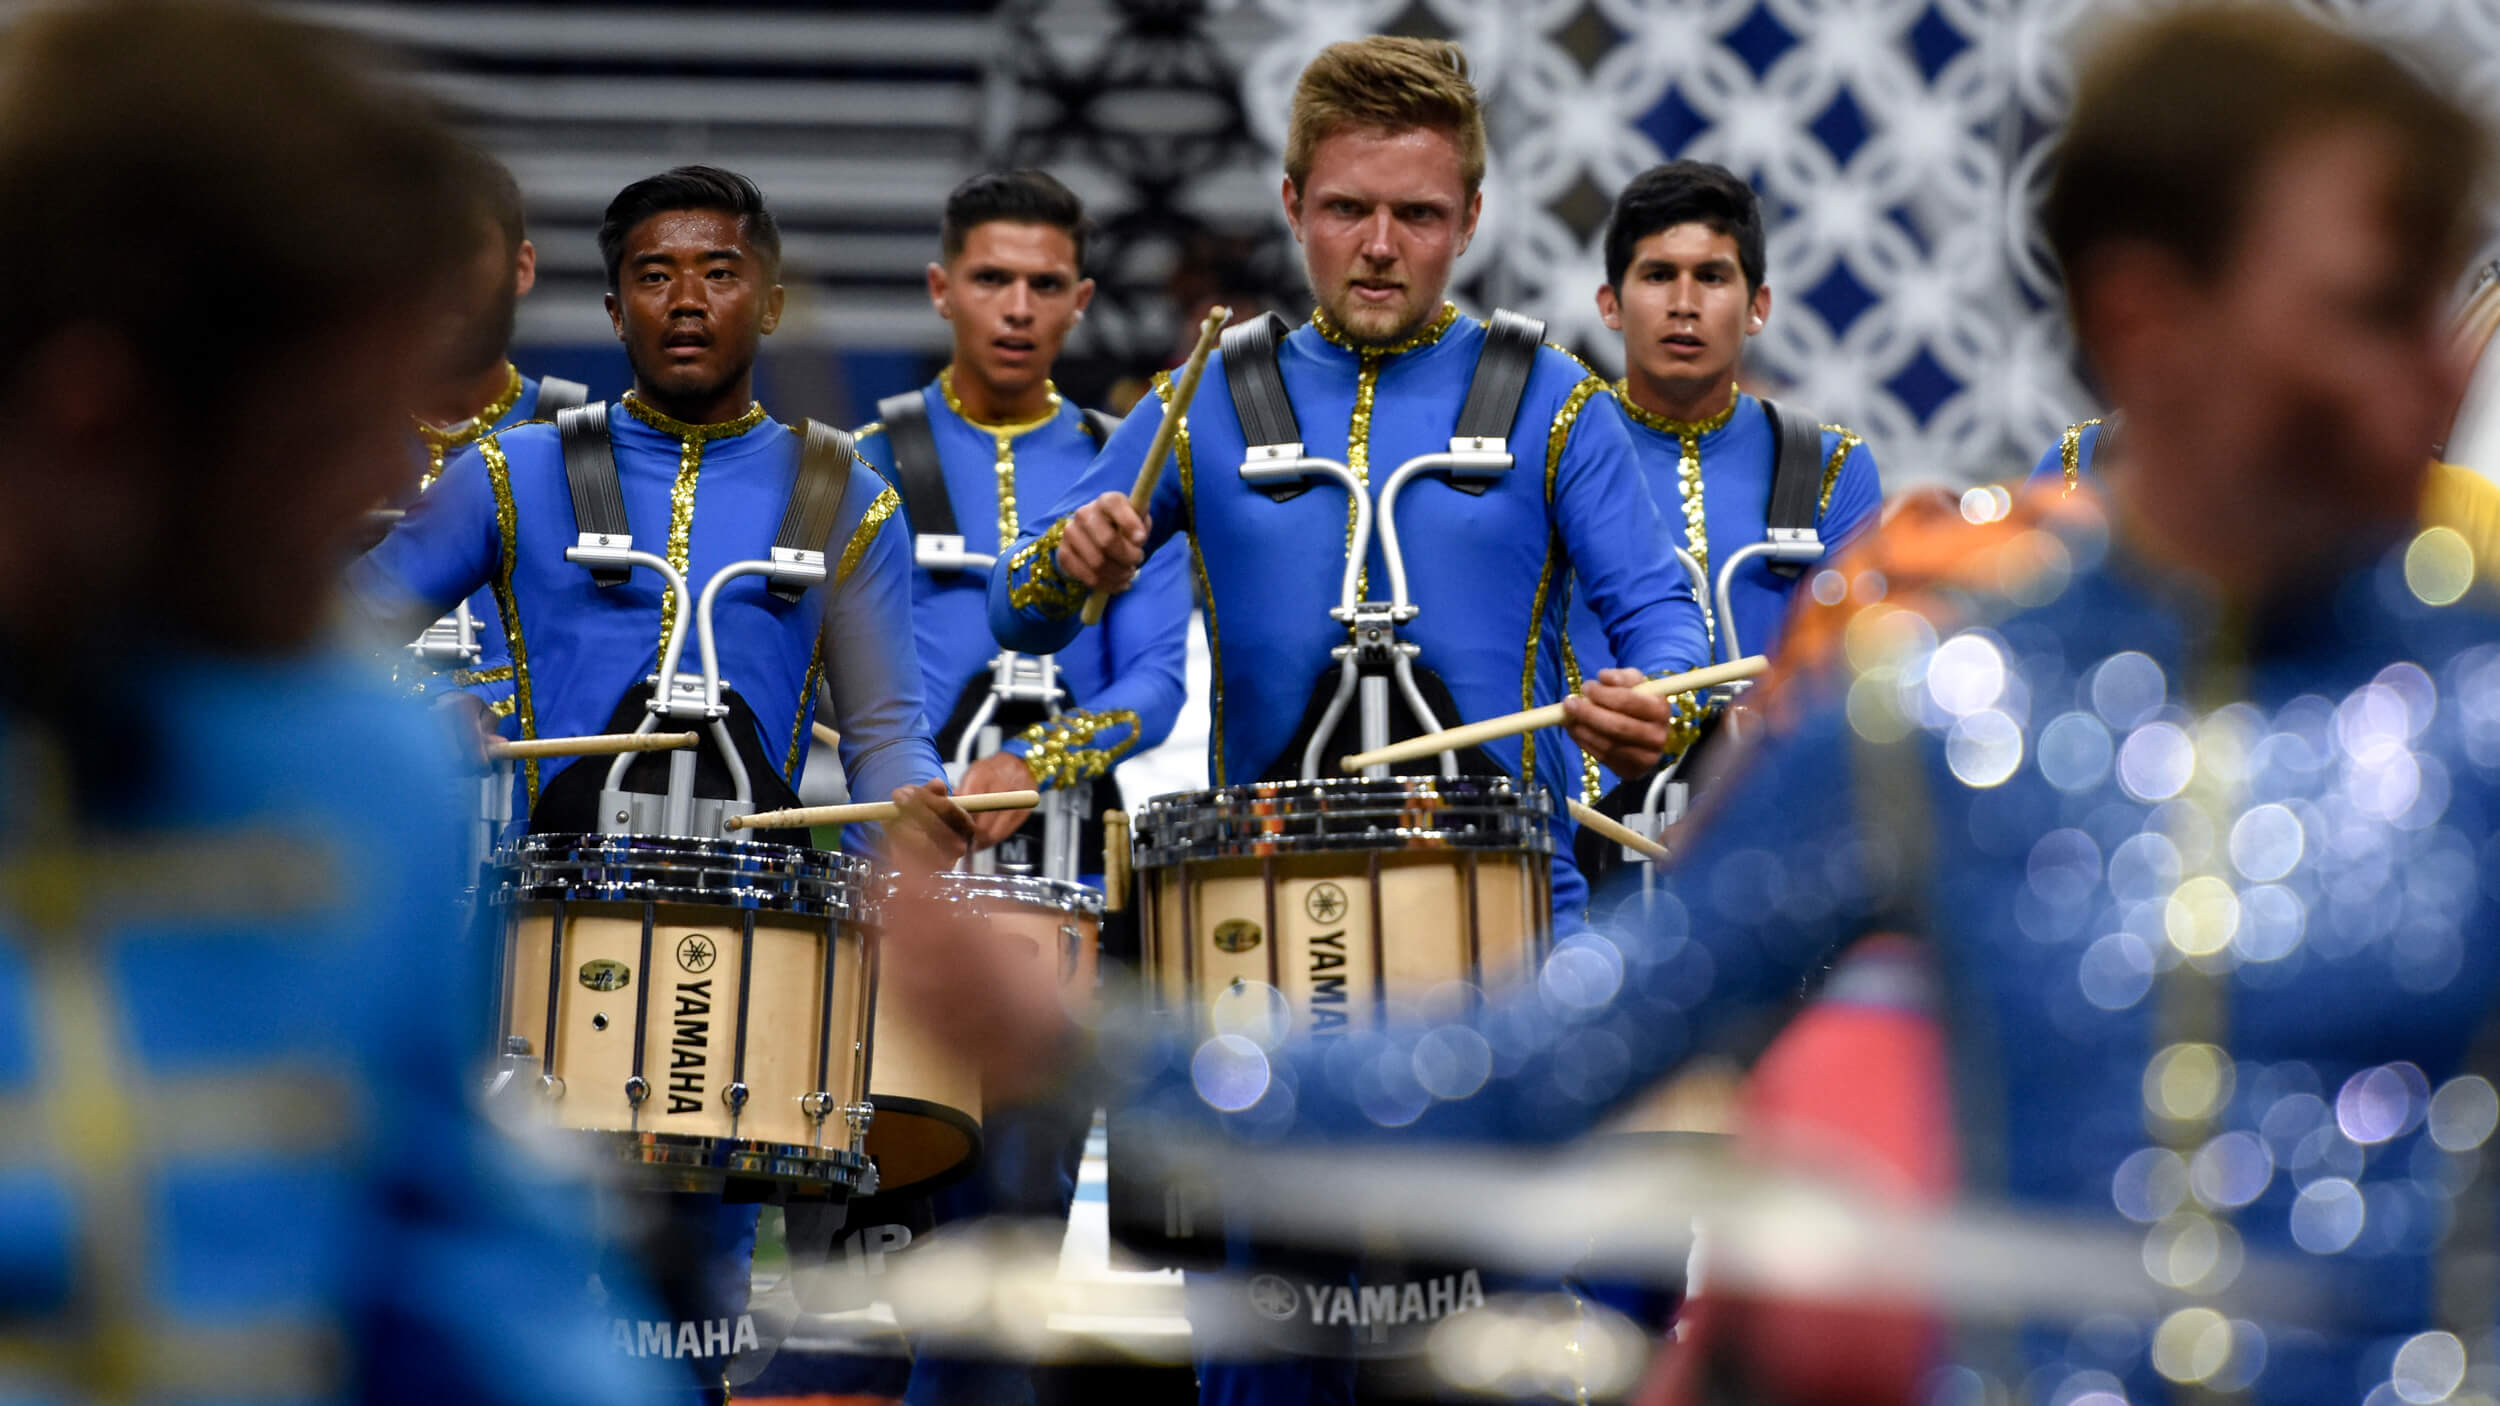 Bluecoats celebrate victory, but remain focused